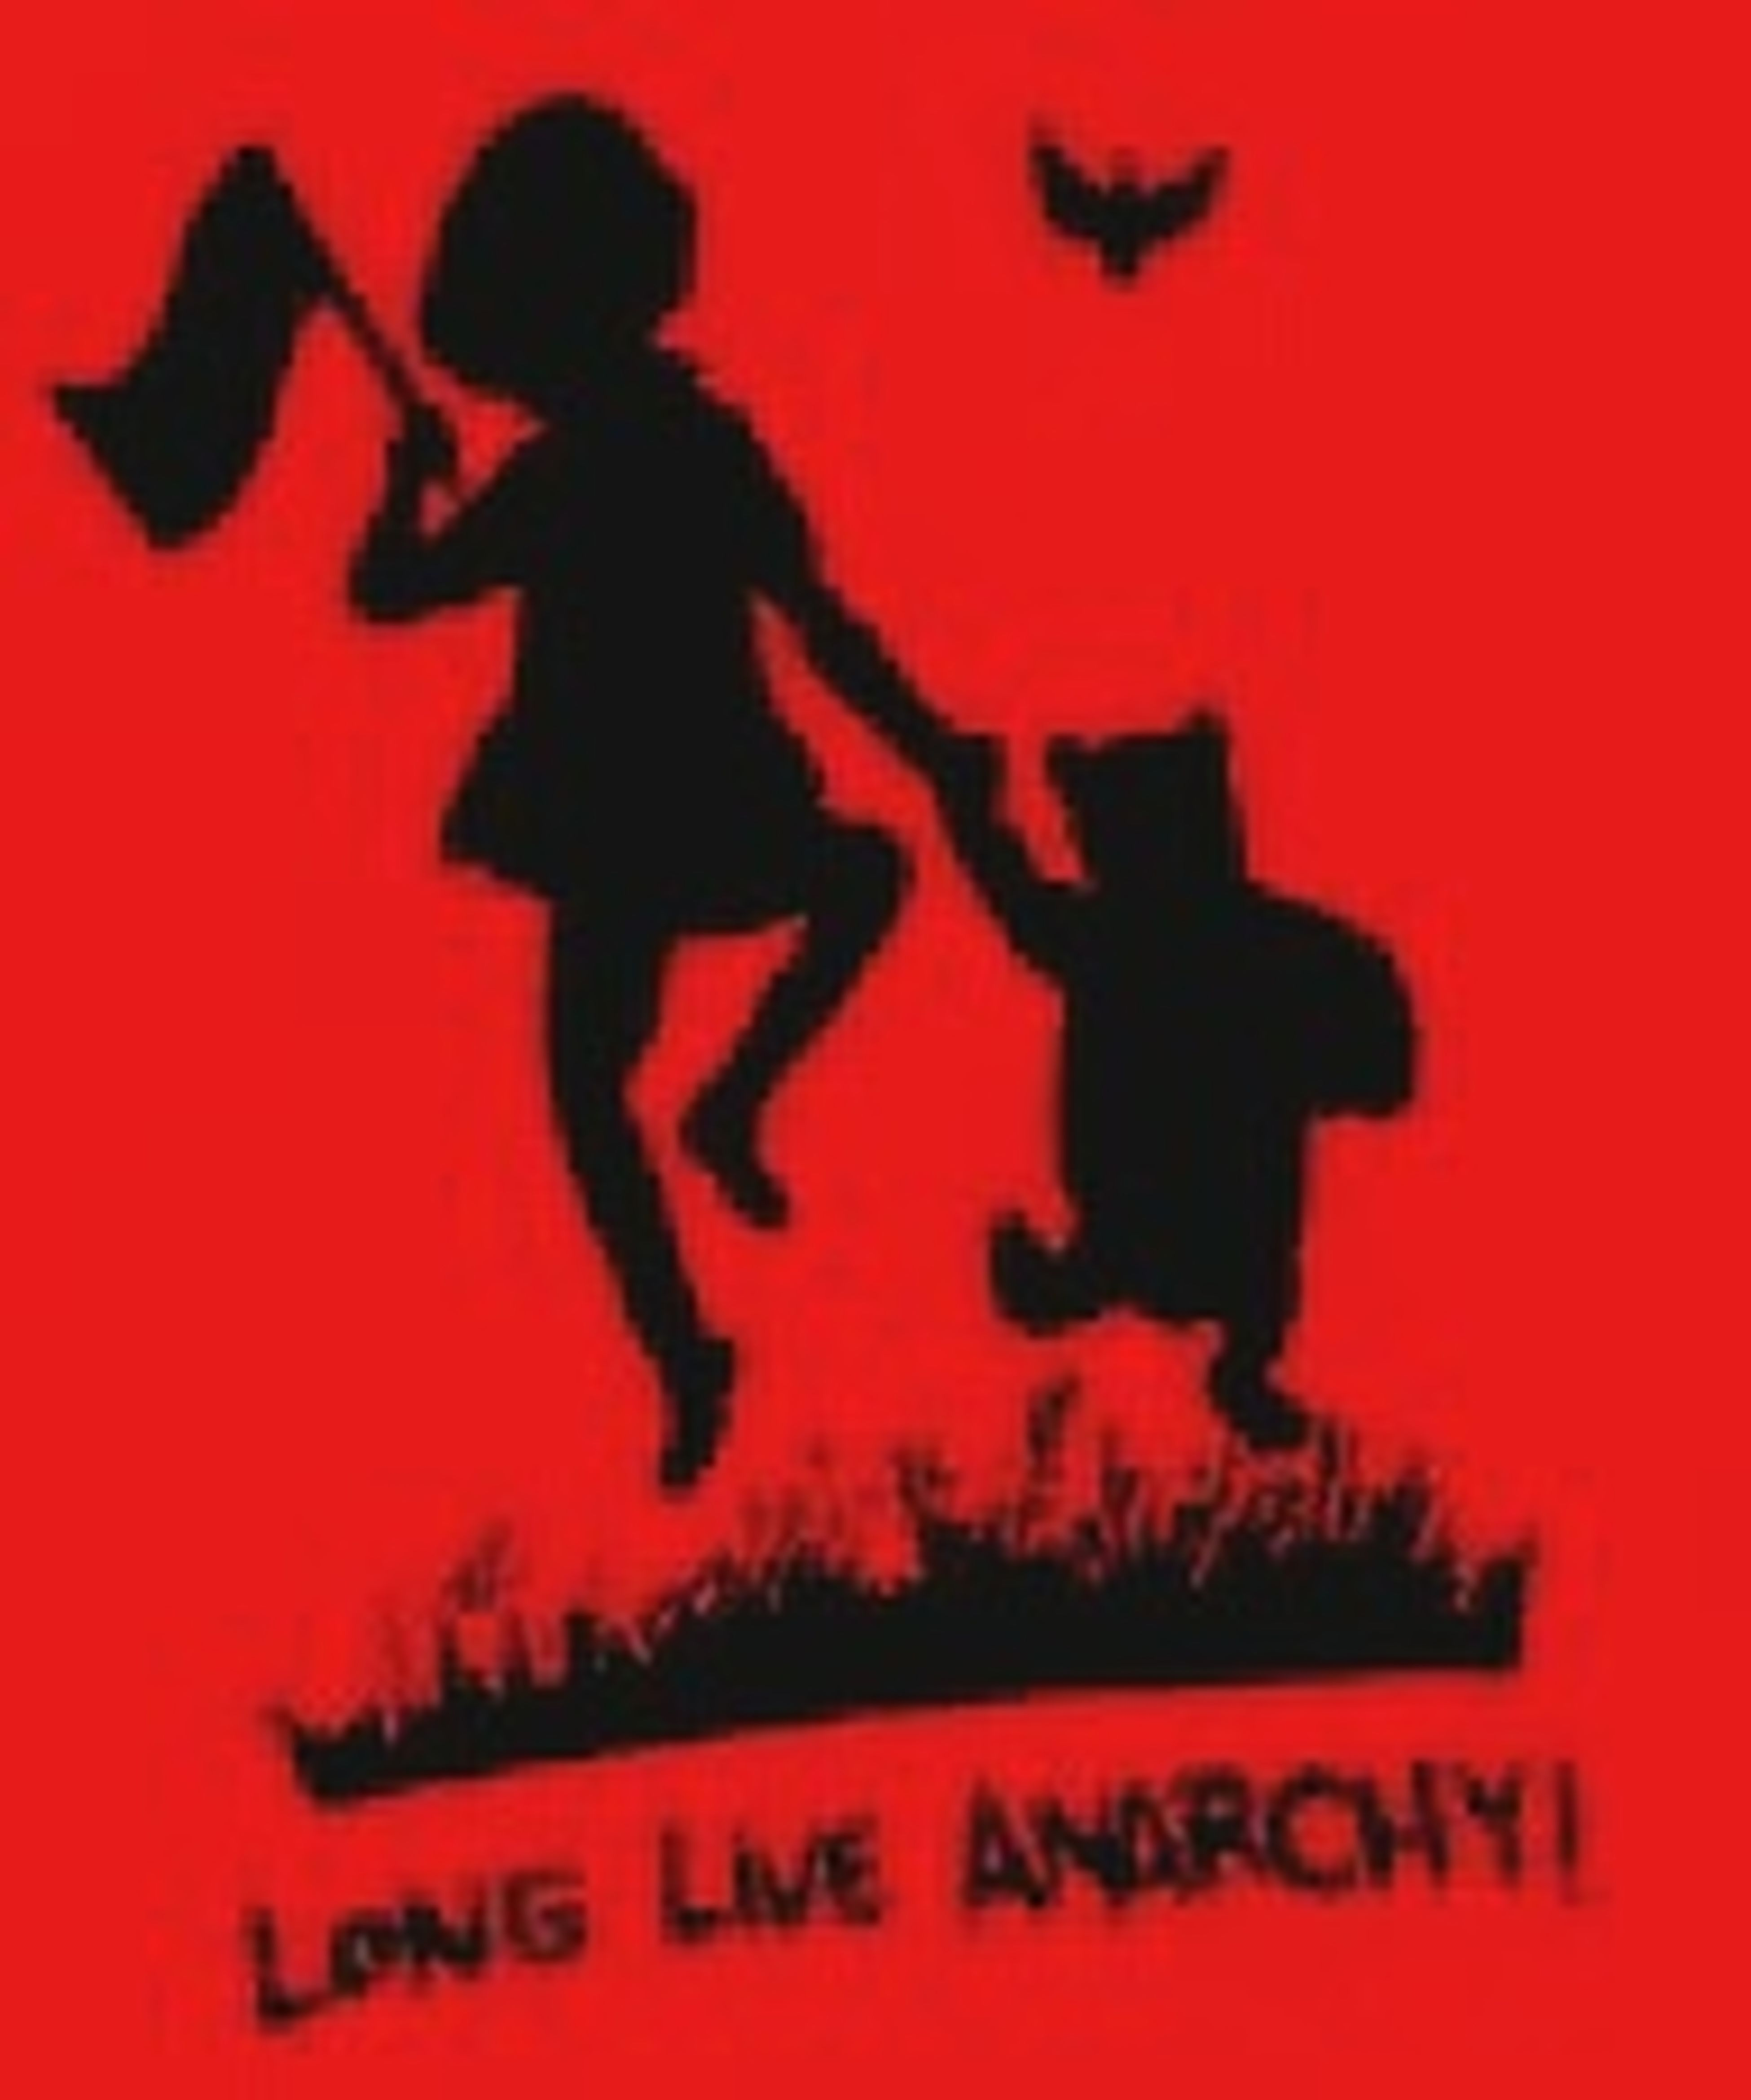 Anarchy Longliveanarchy Love Cute Freedom Red Black Black&Red